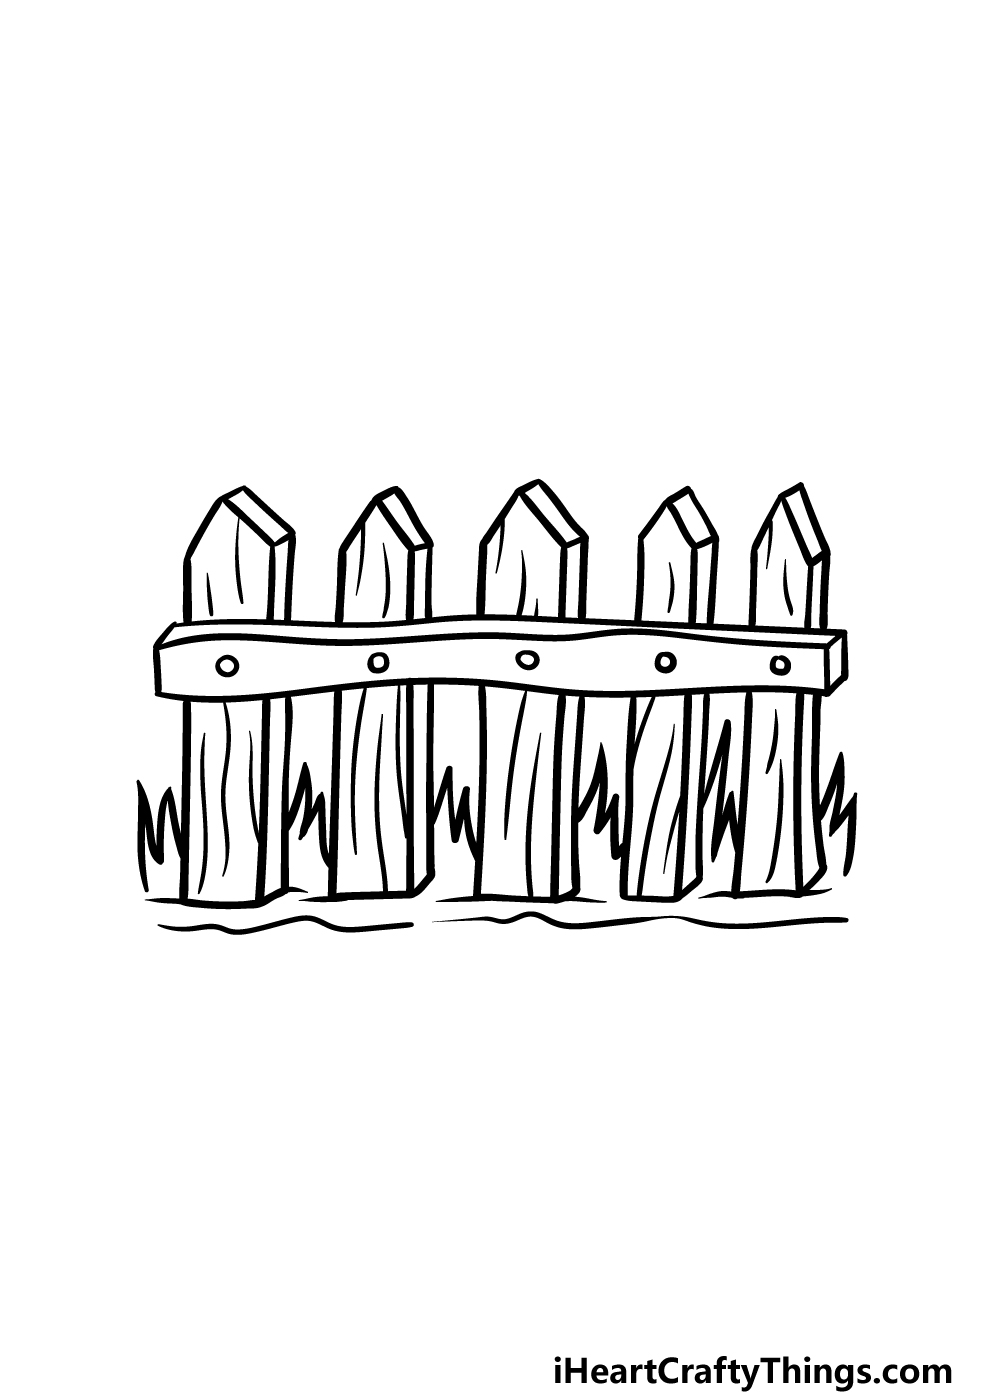 drawing fence step 5